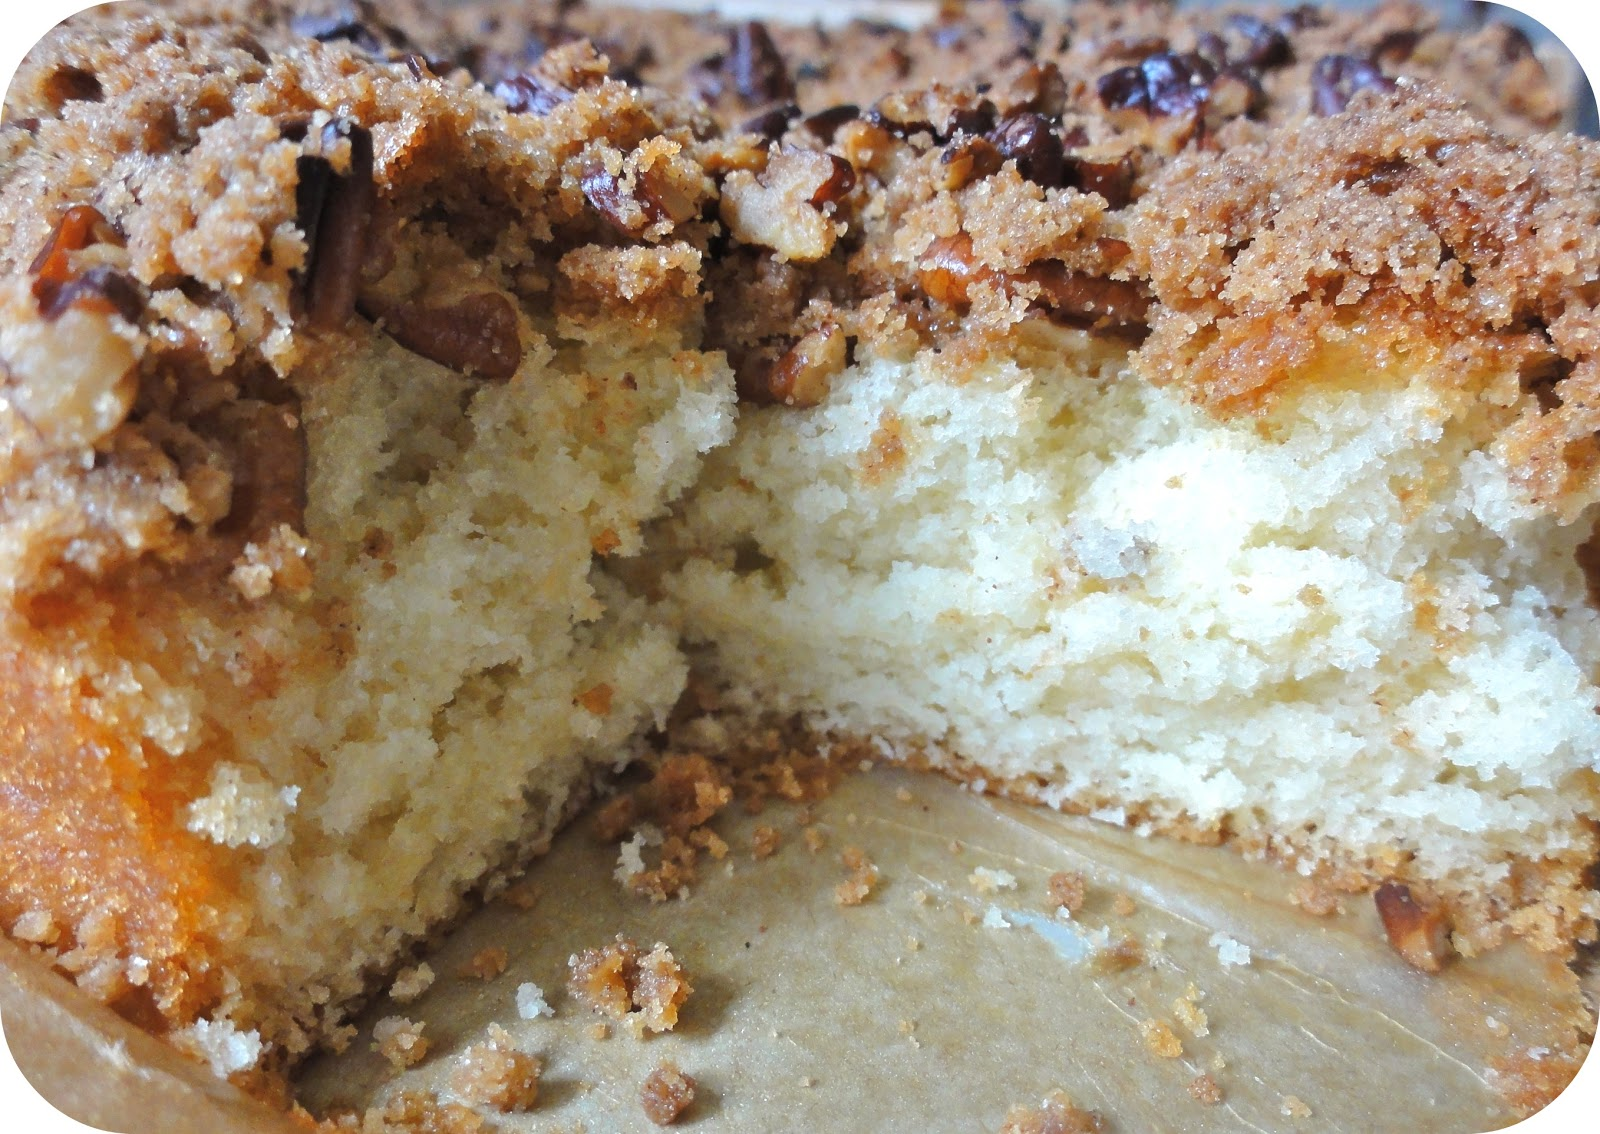 The Procrastobaker: The Best Coffee Cake